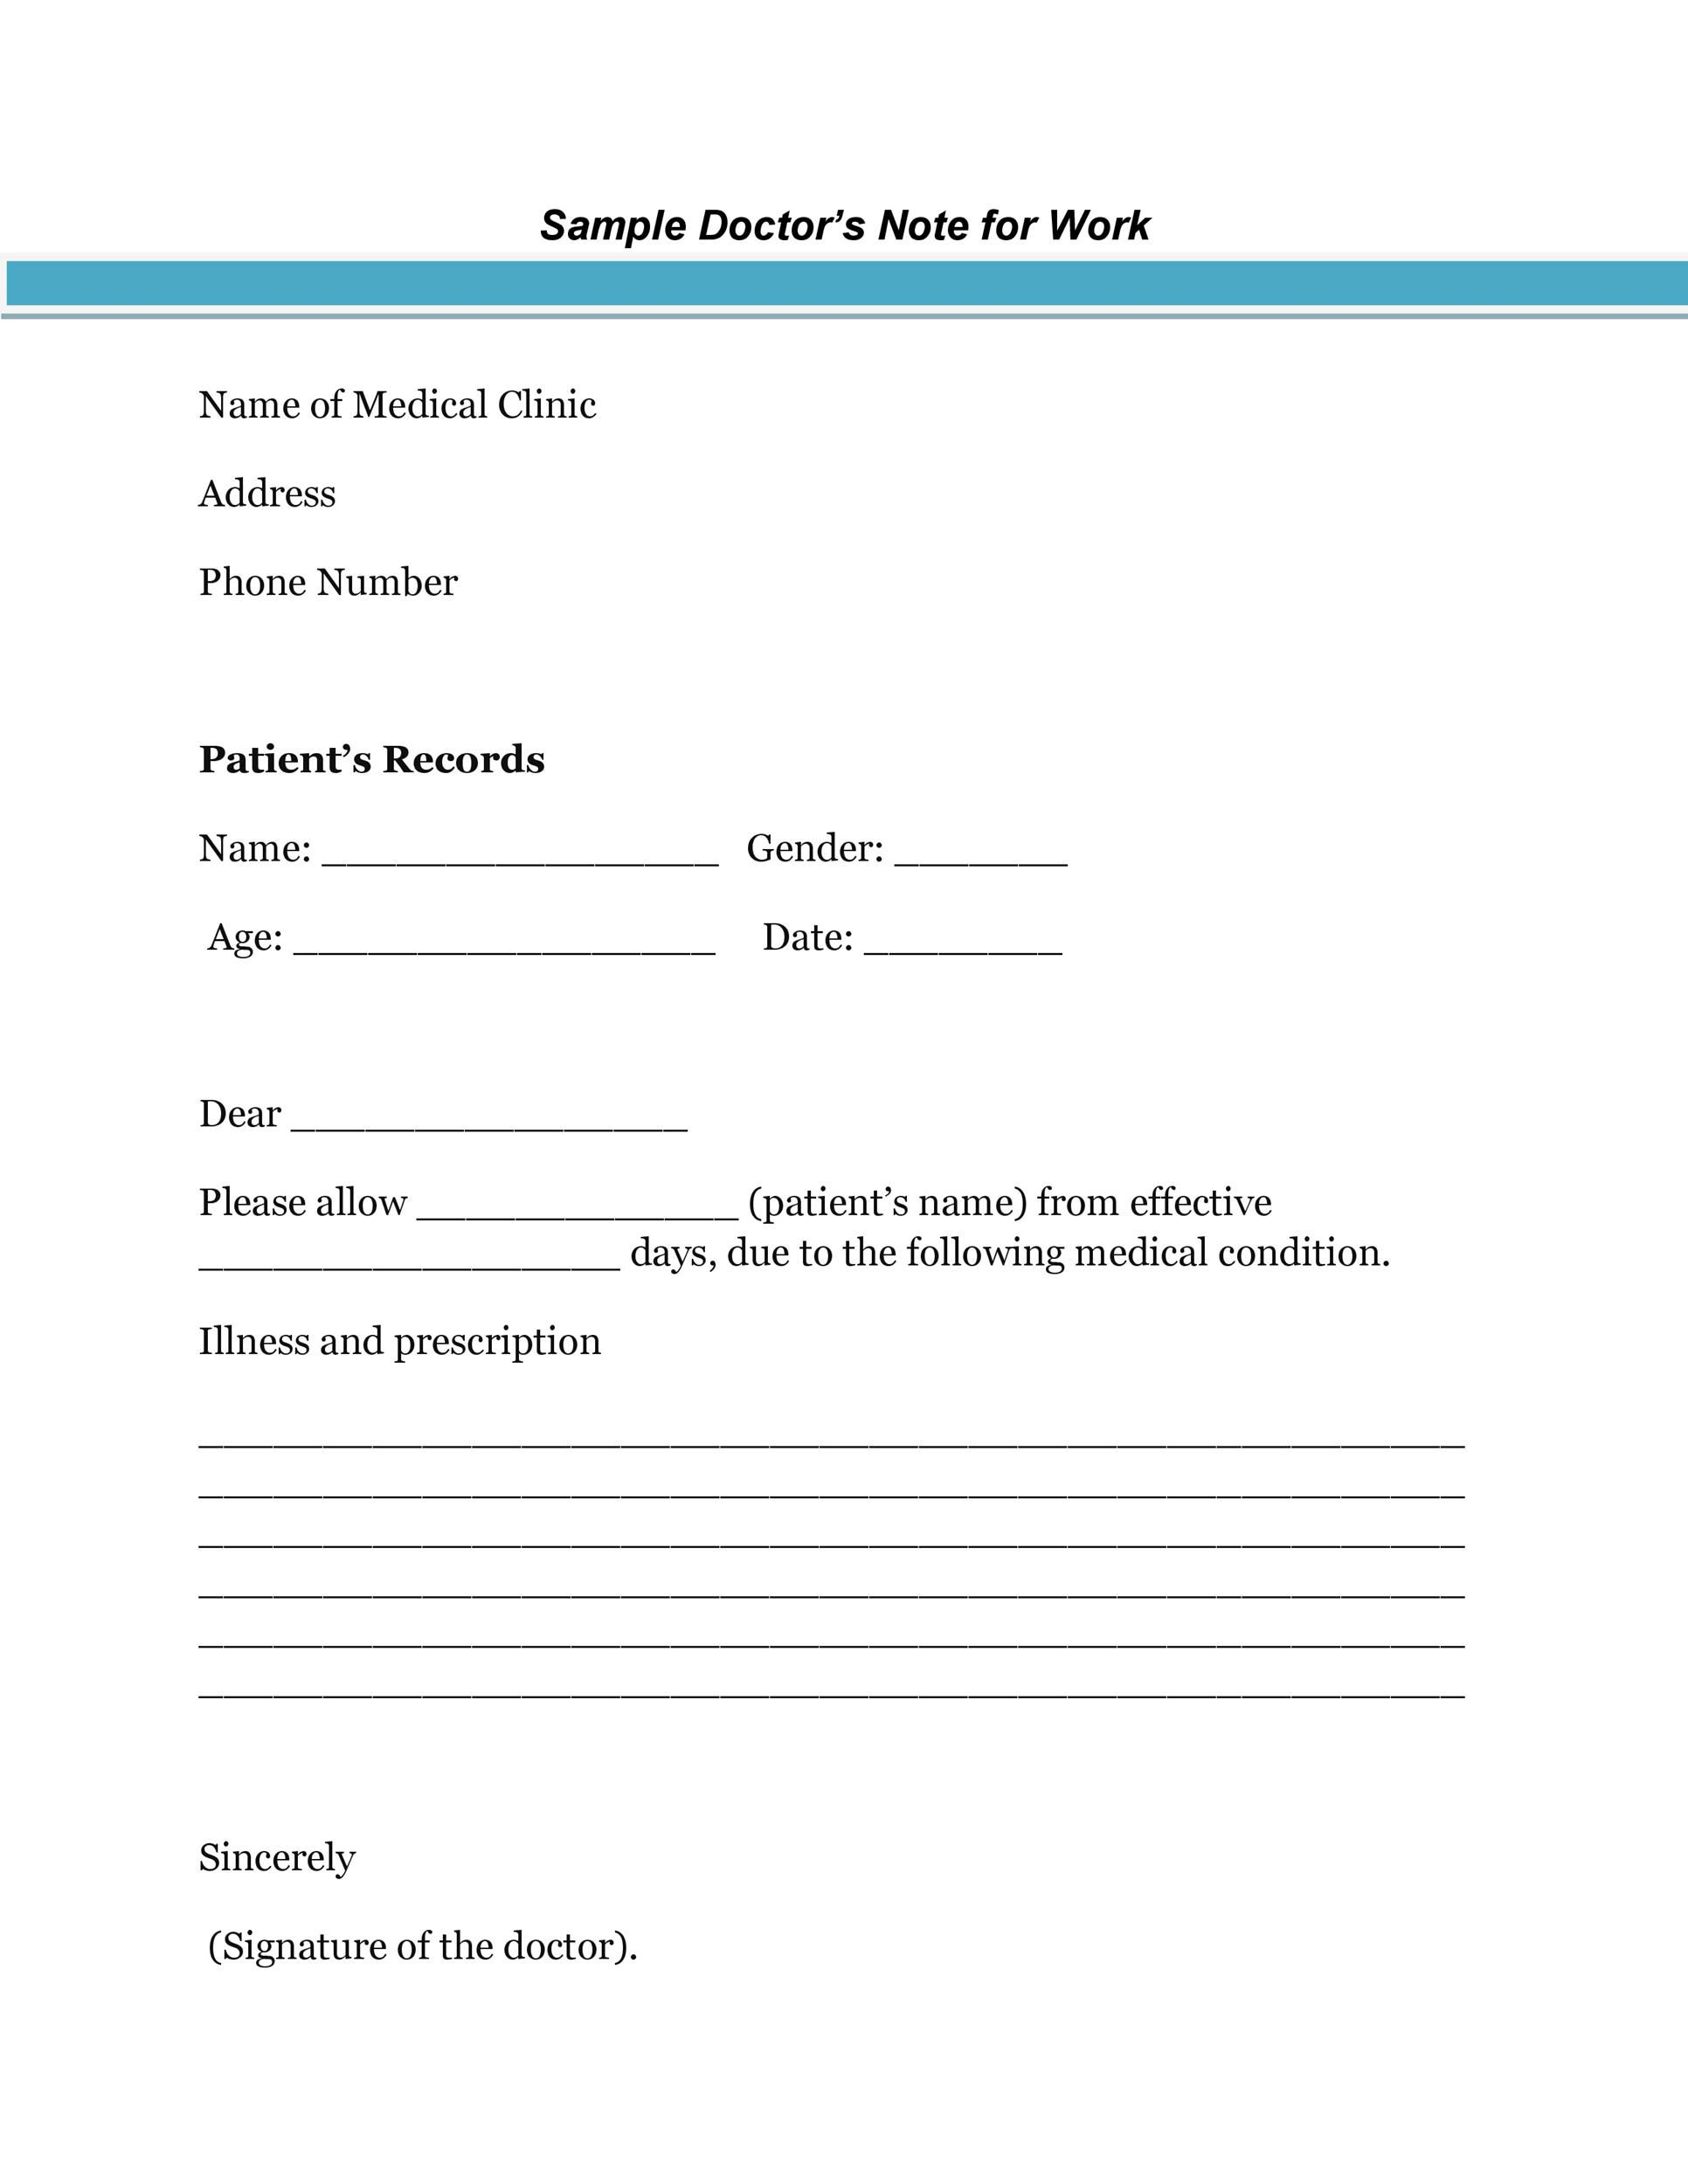 009 Staggering Free Doctor Note Template For Work High Resolution  Printable Editable Fake PdfFull